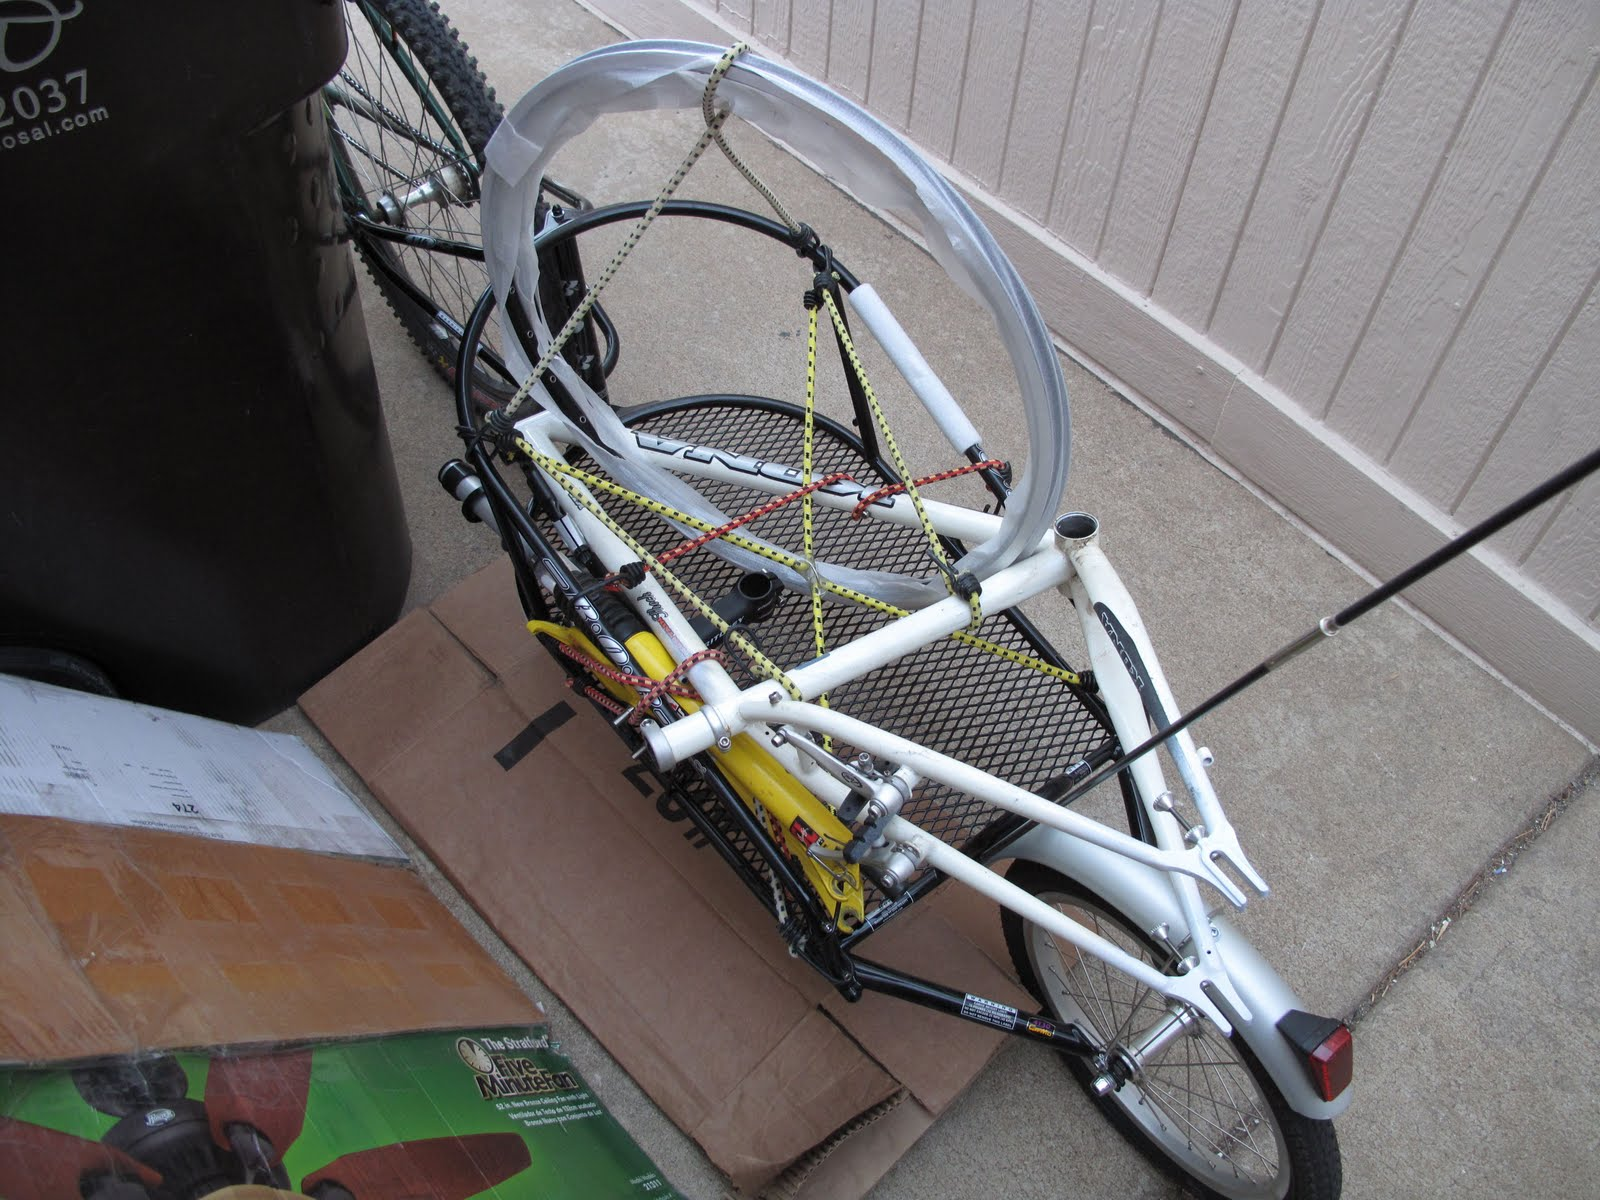 waltworks bicycles play to your strengths play to your strengths i had no problem installing some nice paul dropouts on bob s old kona so that he could happily singlespeed on it